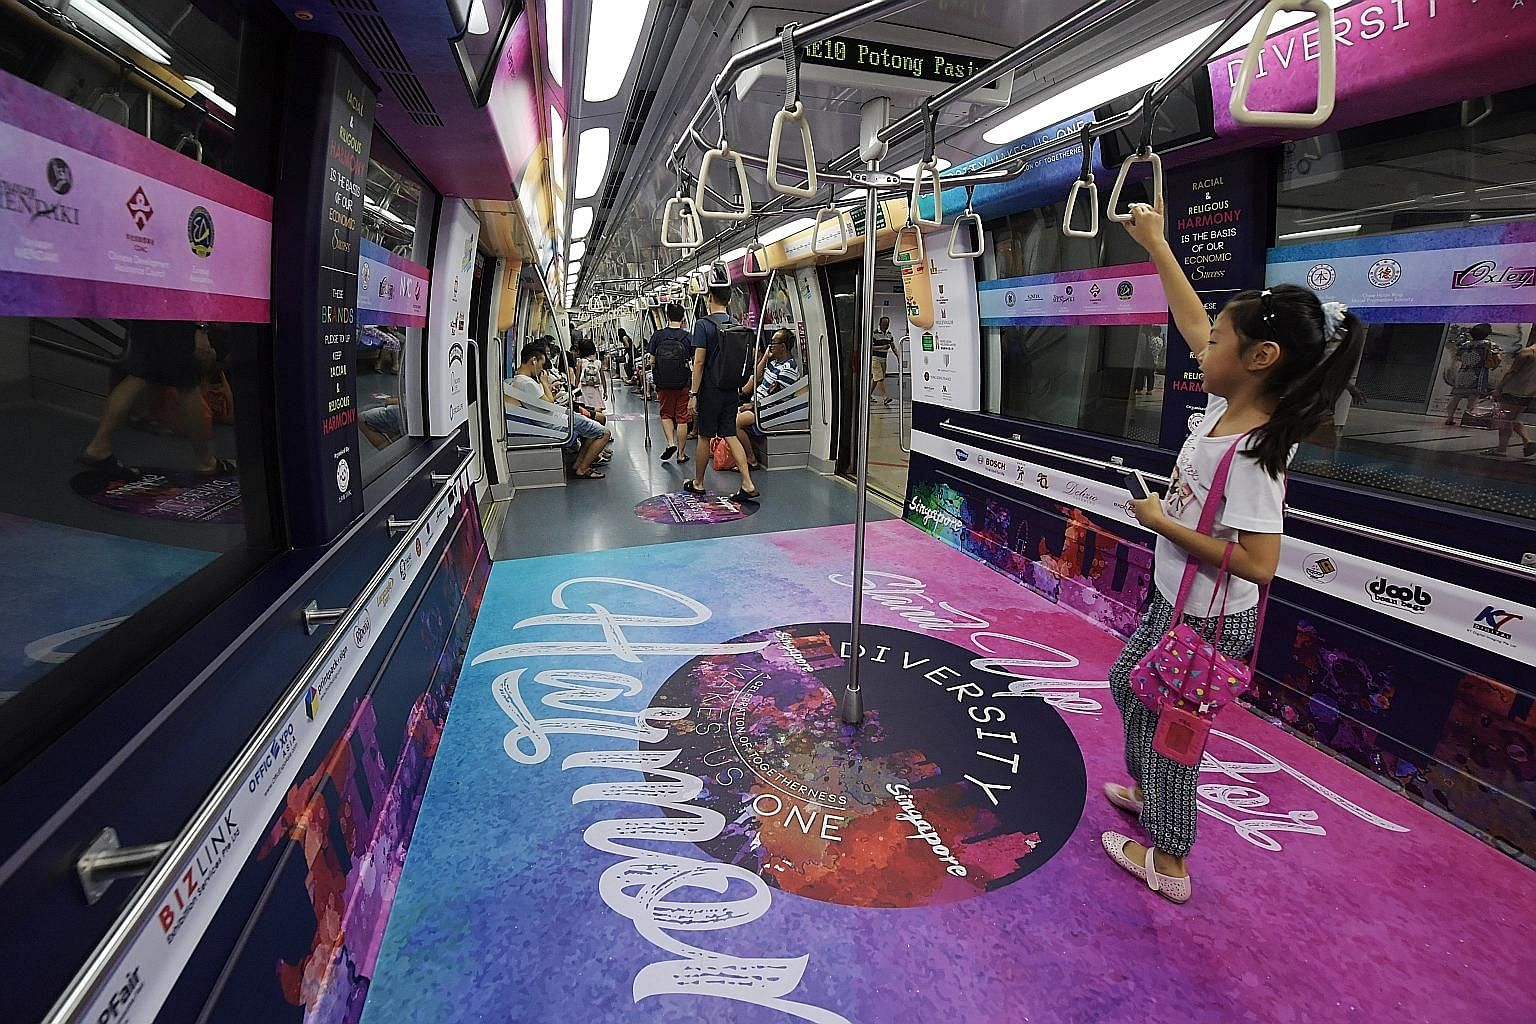 The Harmony Train, a collaboration between the Thye Hua Kwan Moral Society and the National Youth Council, has decals with messages promoting racial and religious harmony. It will run along the North-East Line throughout next month - which is both Ha